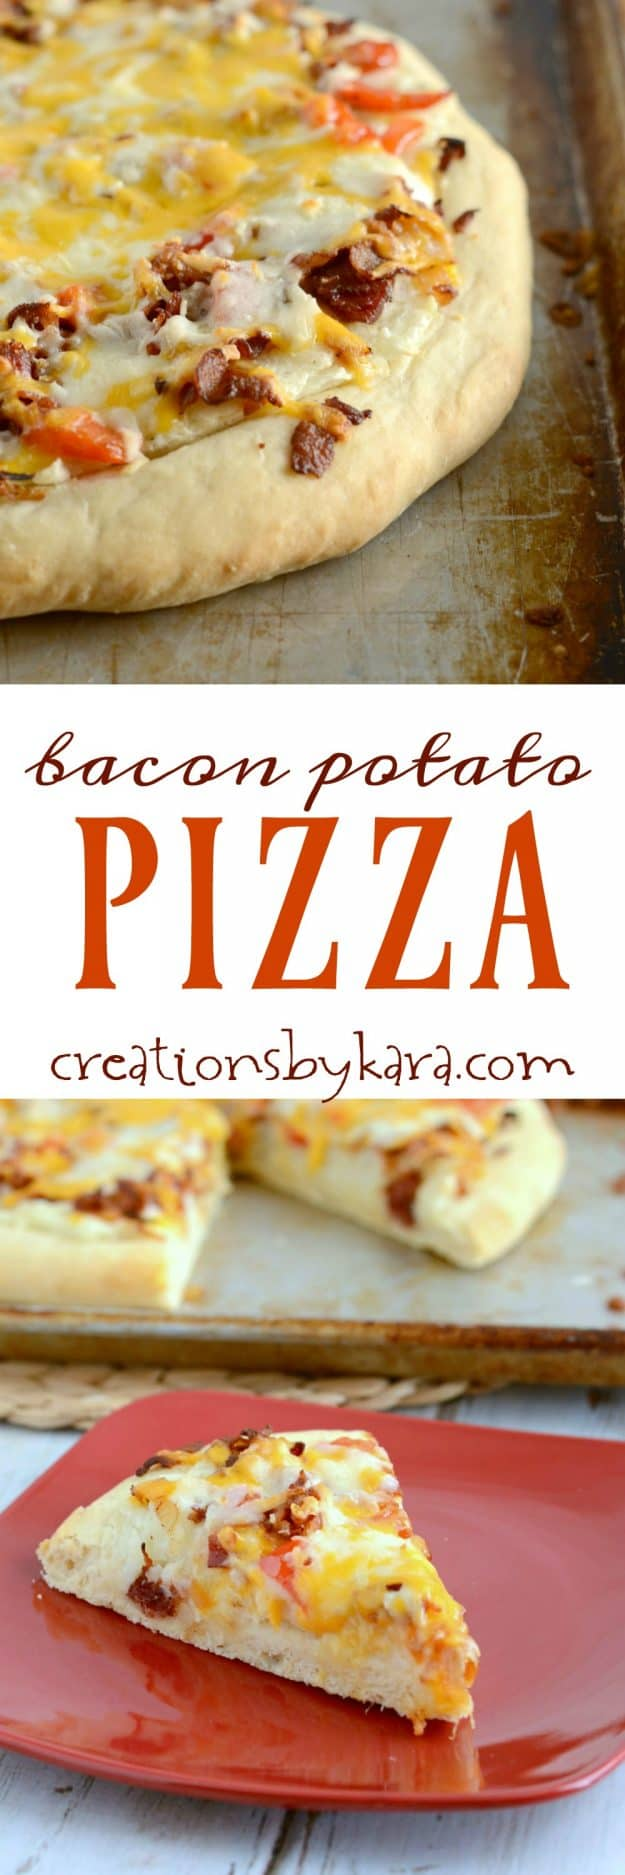 Loaded with bacon, red peppers, cheese, and mashed potatoes, this Bacon Potato Pizza may become a new favorite at your house!